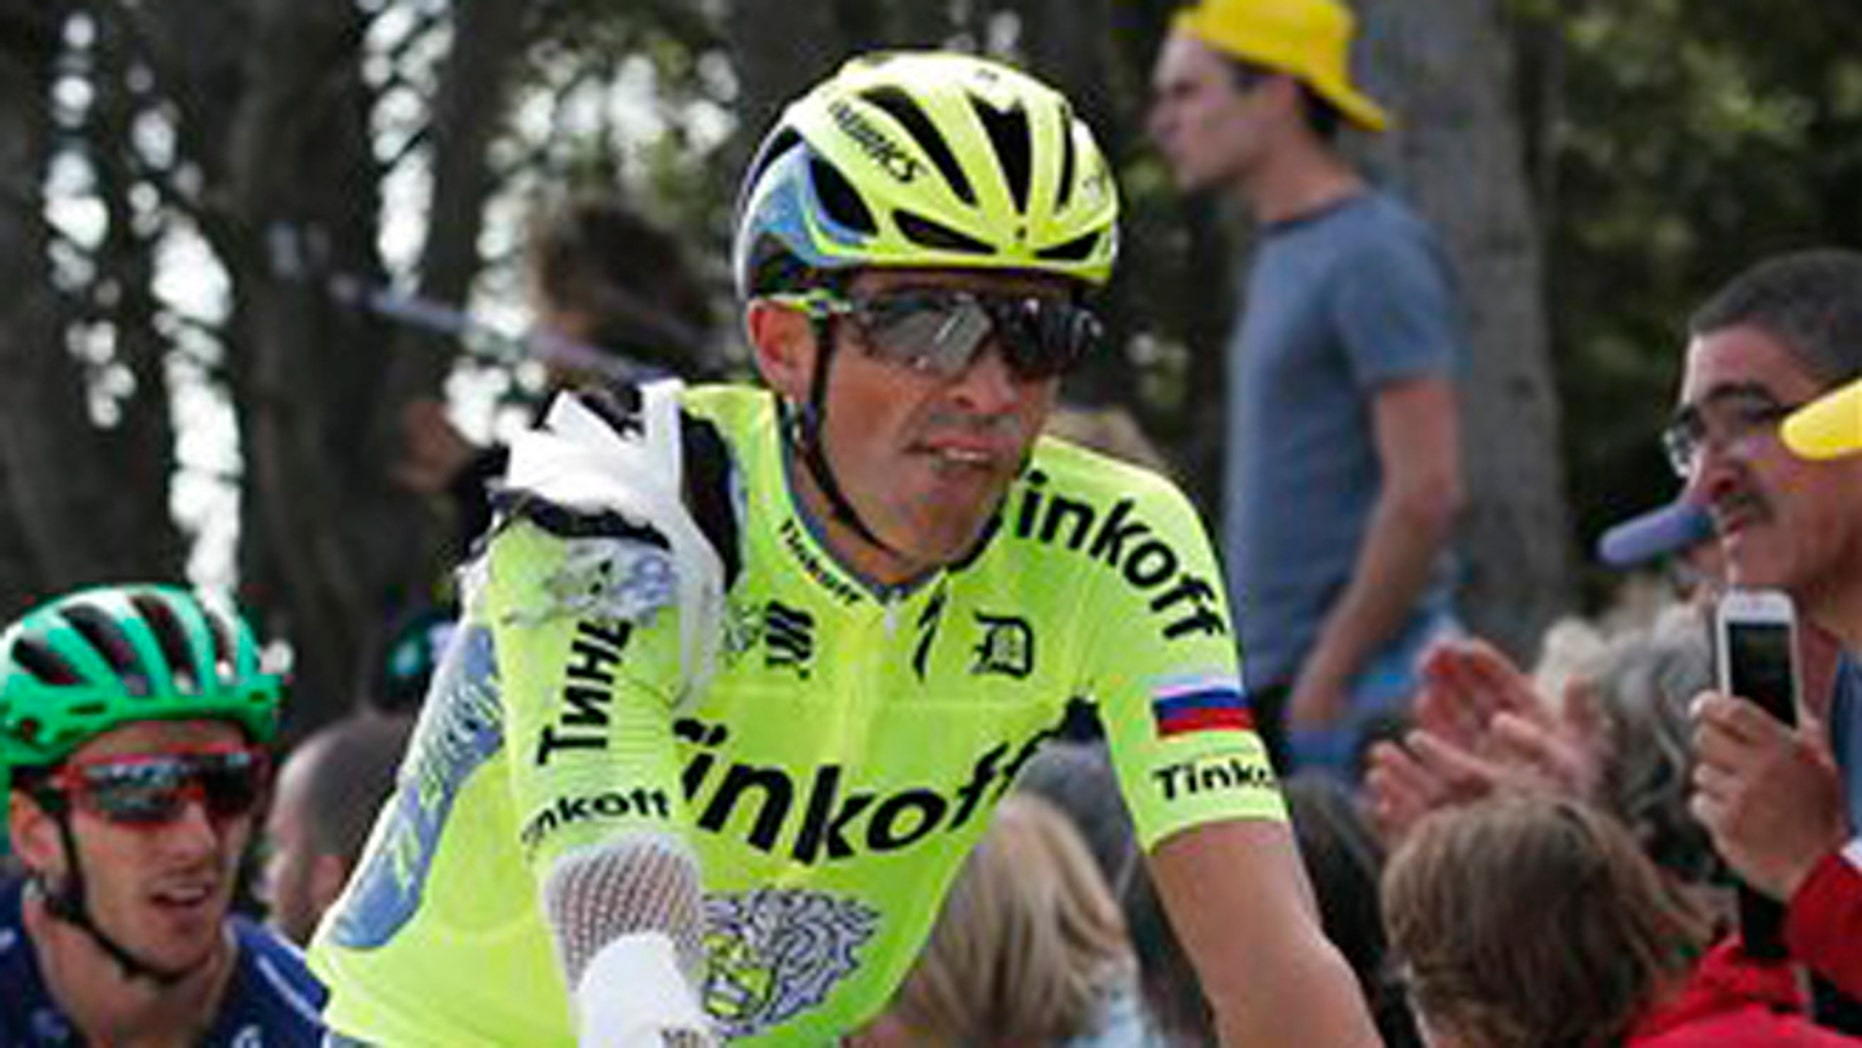 Spain's Alberto Contador crosses the finish line after crashing in the first stage of the Tour de France cycling race over 188 kilometers (116.8 miles) with start in Mont-Saint-Michel and finish in Utah Beach, France, Saturday, July 2, 2016. (AP Photo/Christophe Ena)